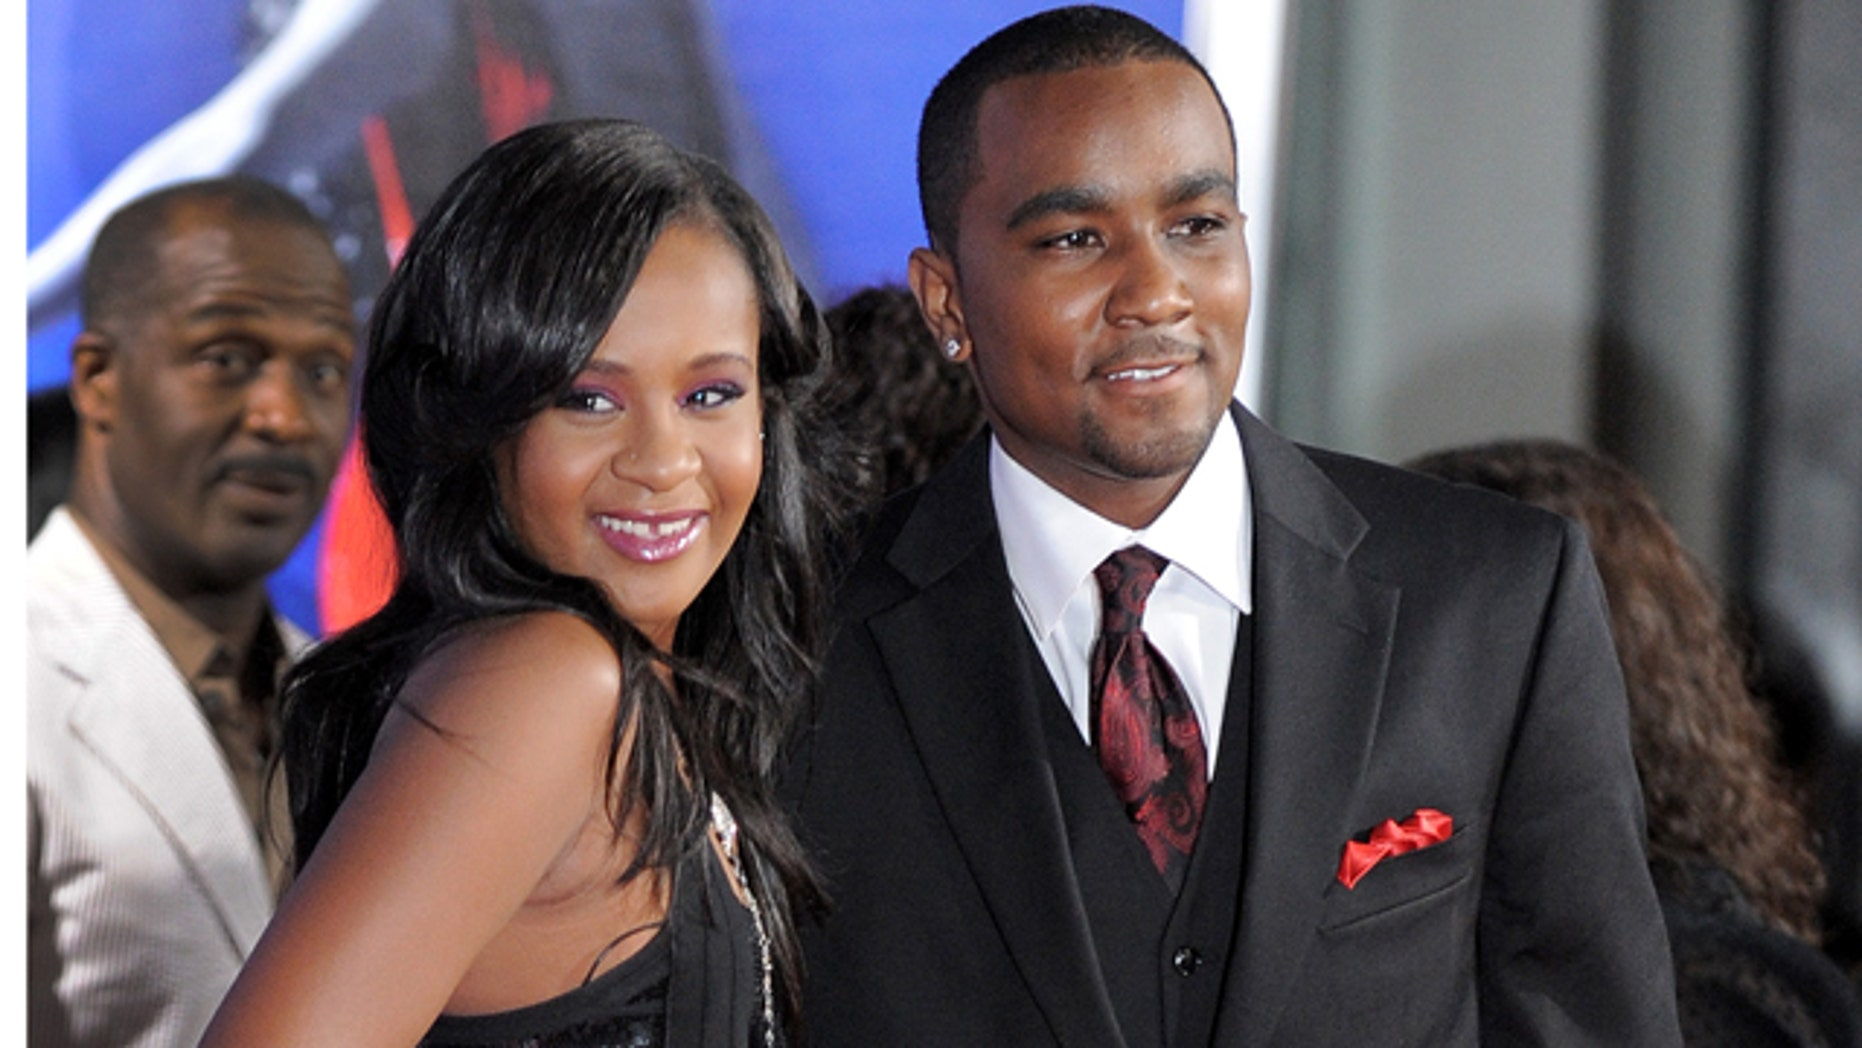 FILE - In this Aug. 16, 2012, file photo, Bobbi Kristina Brown, left, and Nick Gordon attend the Los Angeles premiere of 'Sparkle' at Grauman's Chinese Theatre in Los Angeles. (Photo by Jordan Strauss/Invision/AP, File)